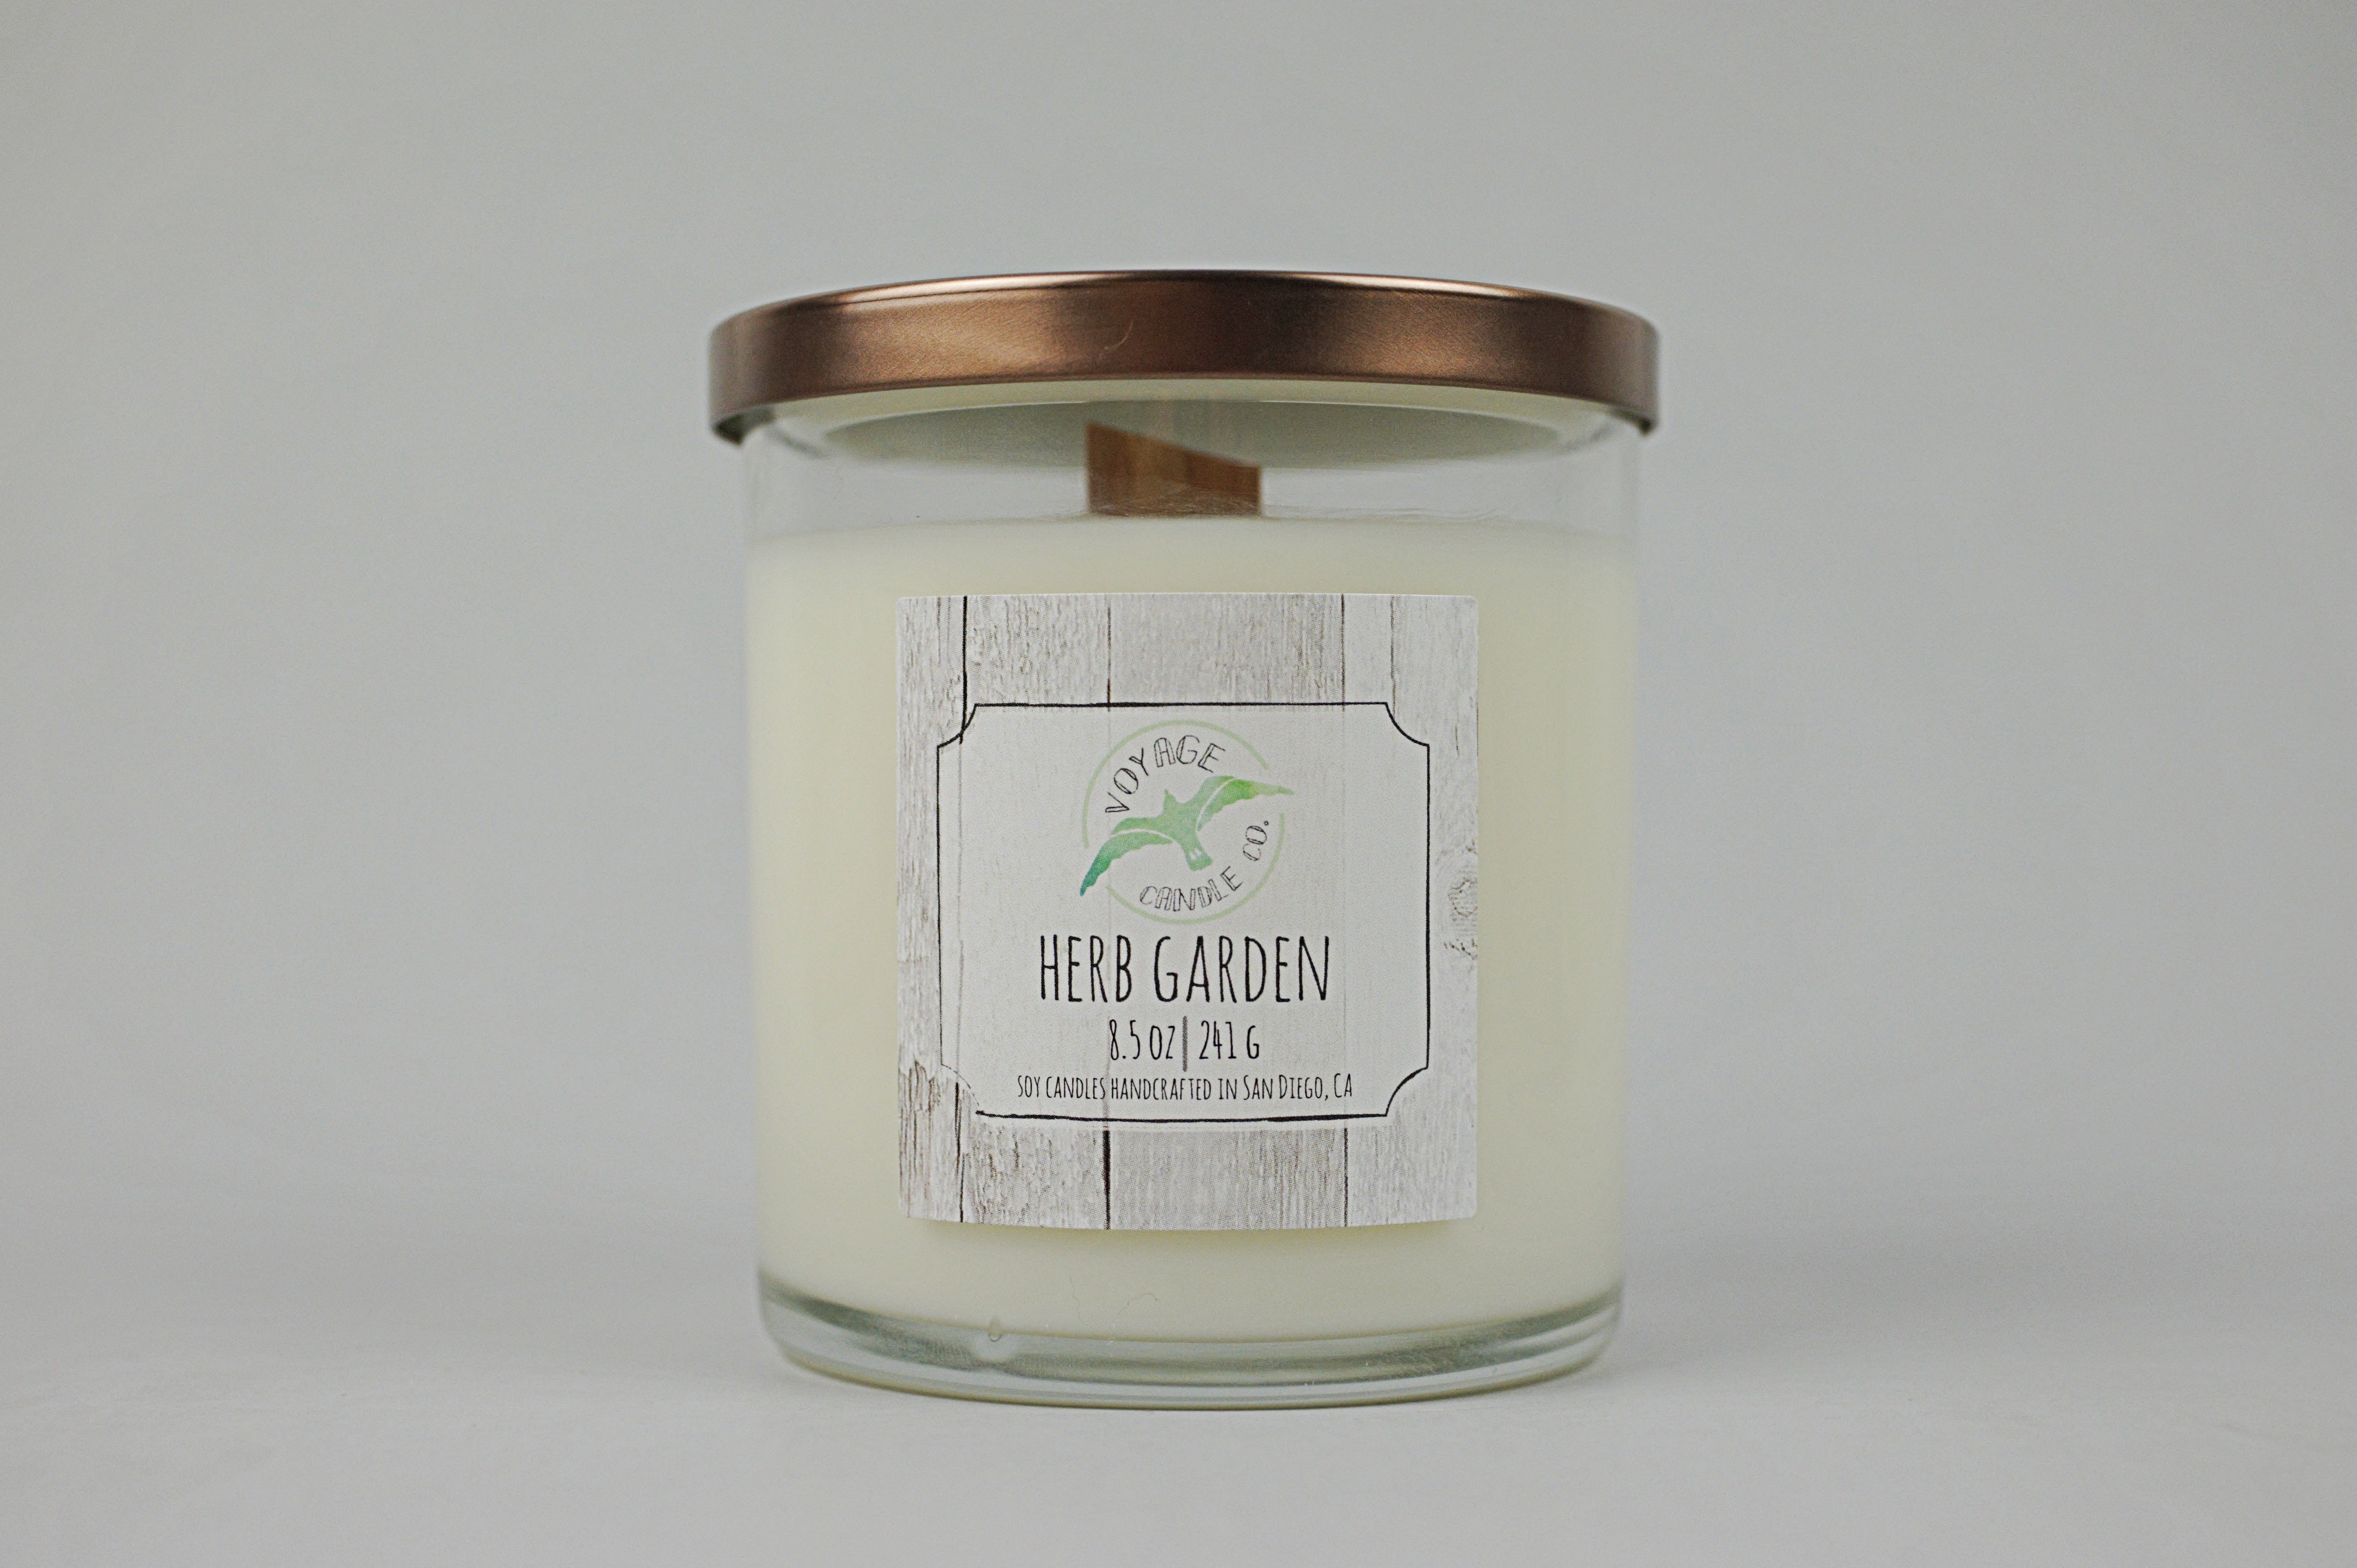 Herb Garden - Wood Wick - Voyage Candle Co.